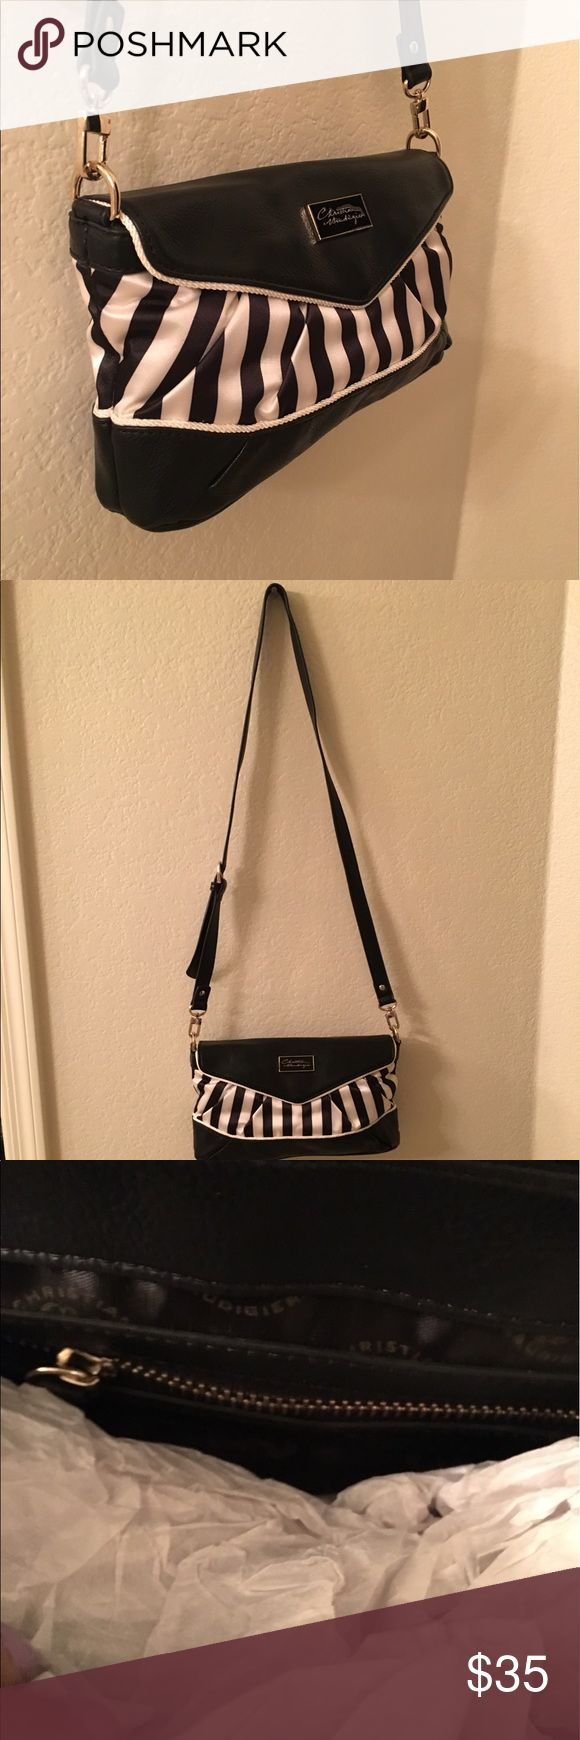 Black and White Crossover Purse Good condition. Christian Audigier Bags Crossbody Bags